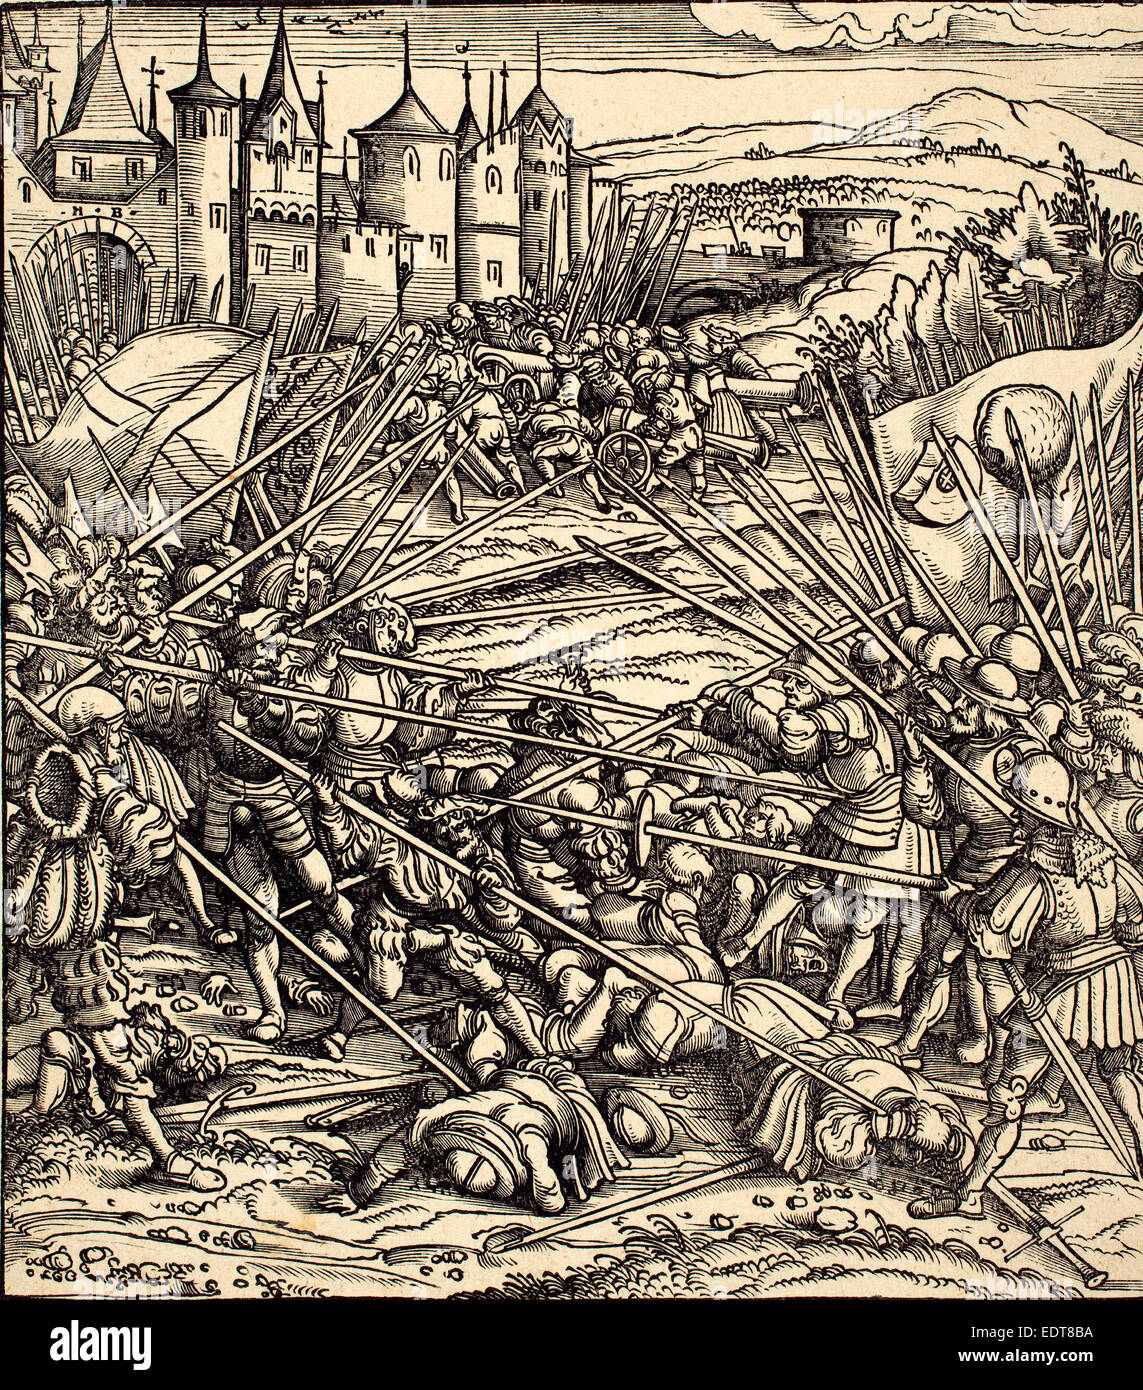 Hans Burgkmair I (German, 1473 - 1531), Battle of the Foot Soldiers with  Lances, woodcut